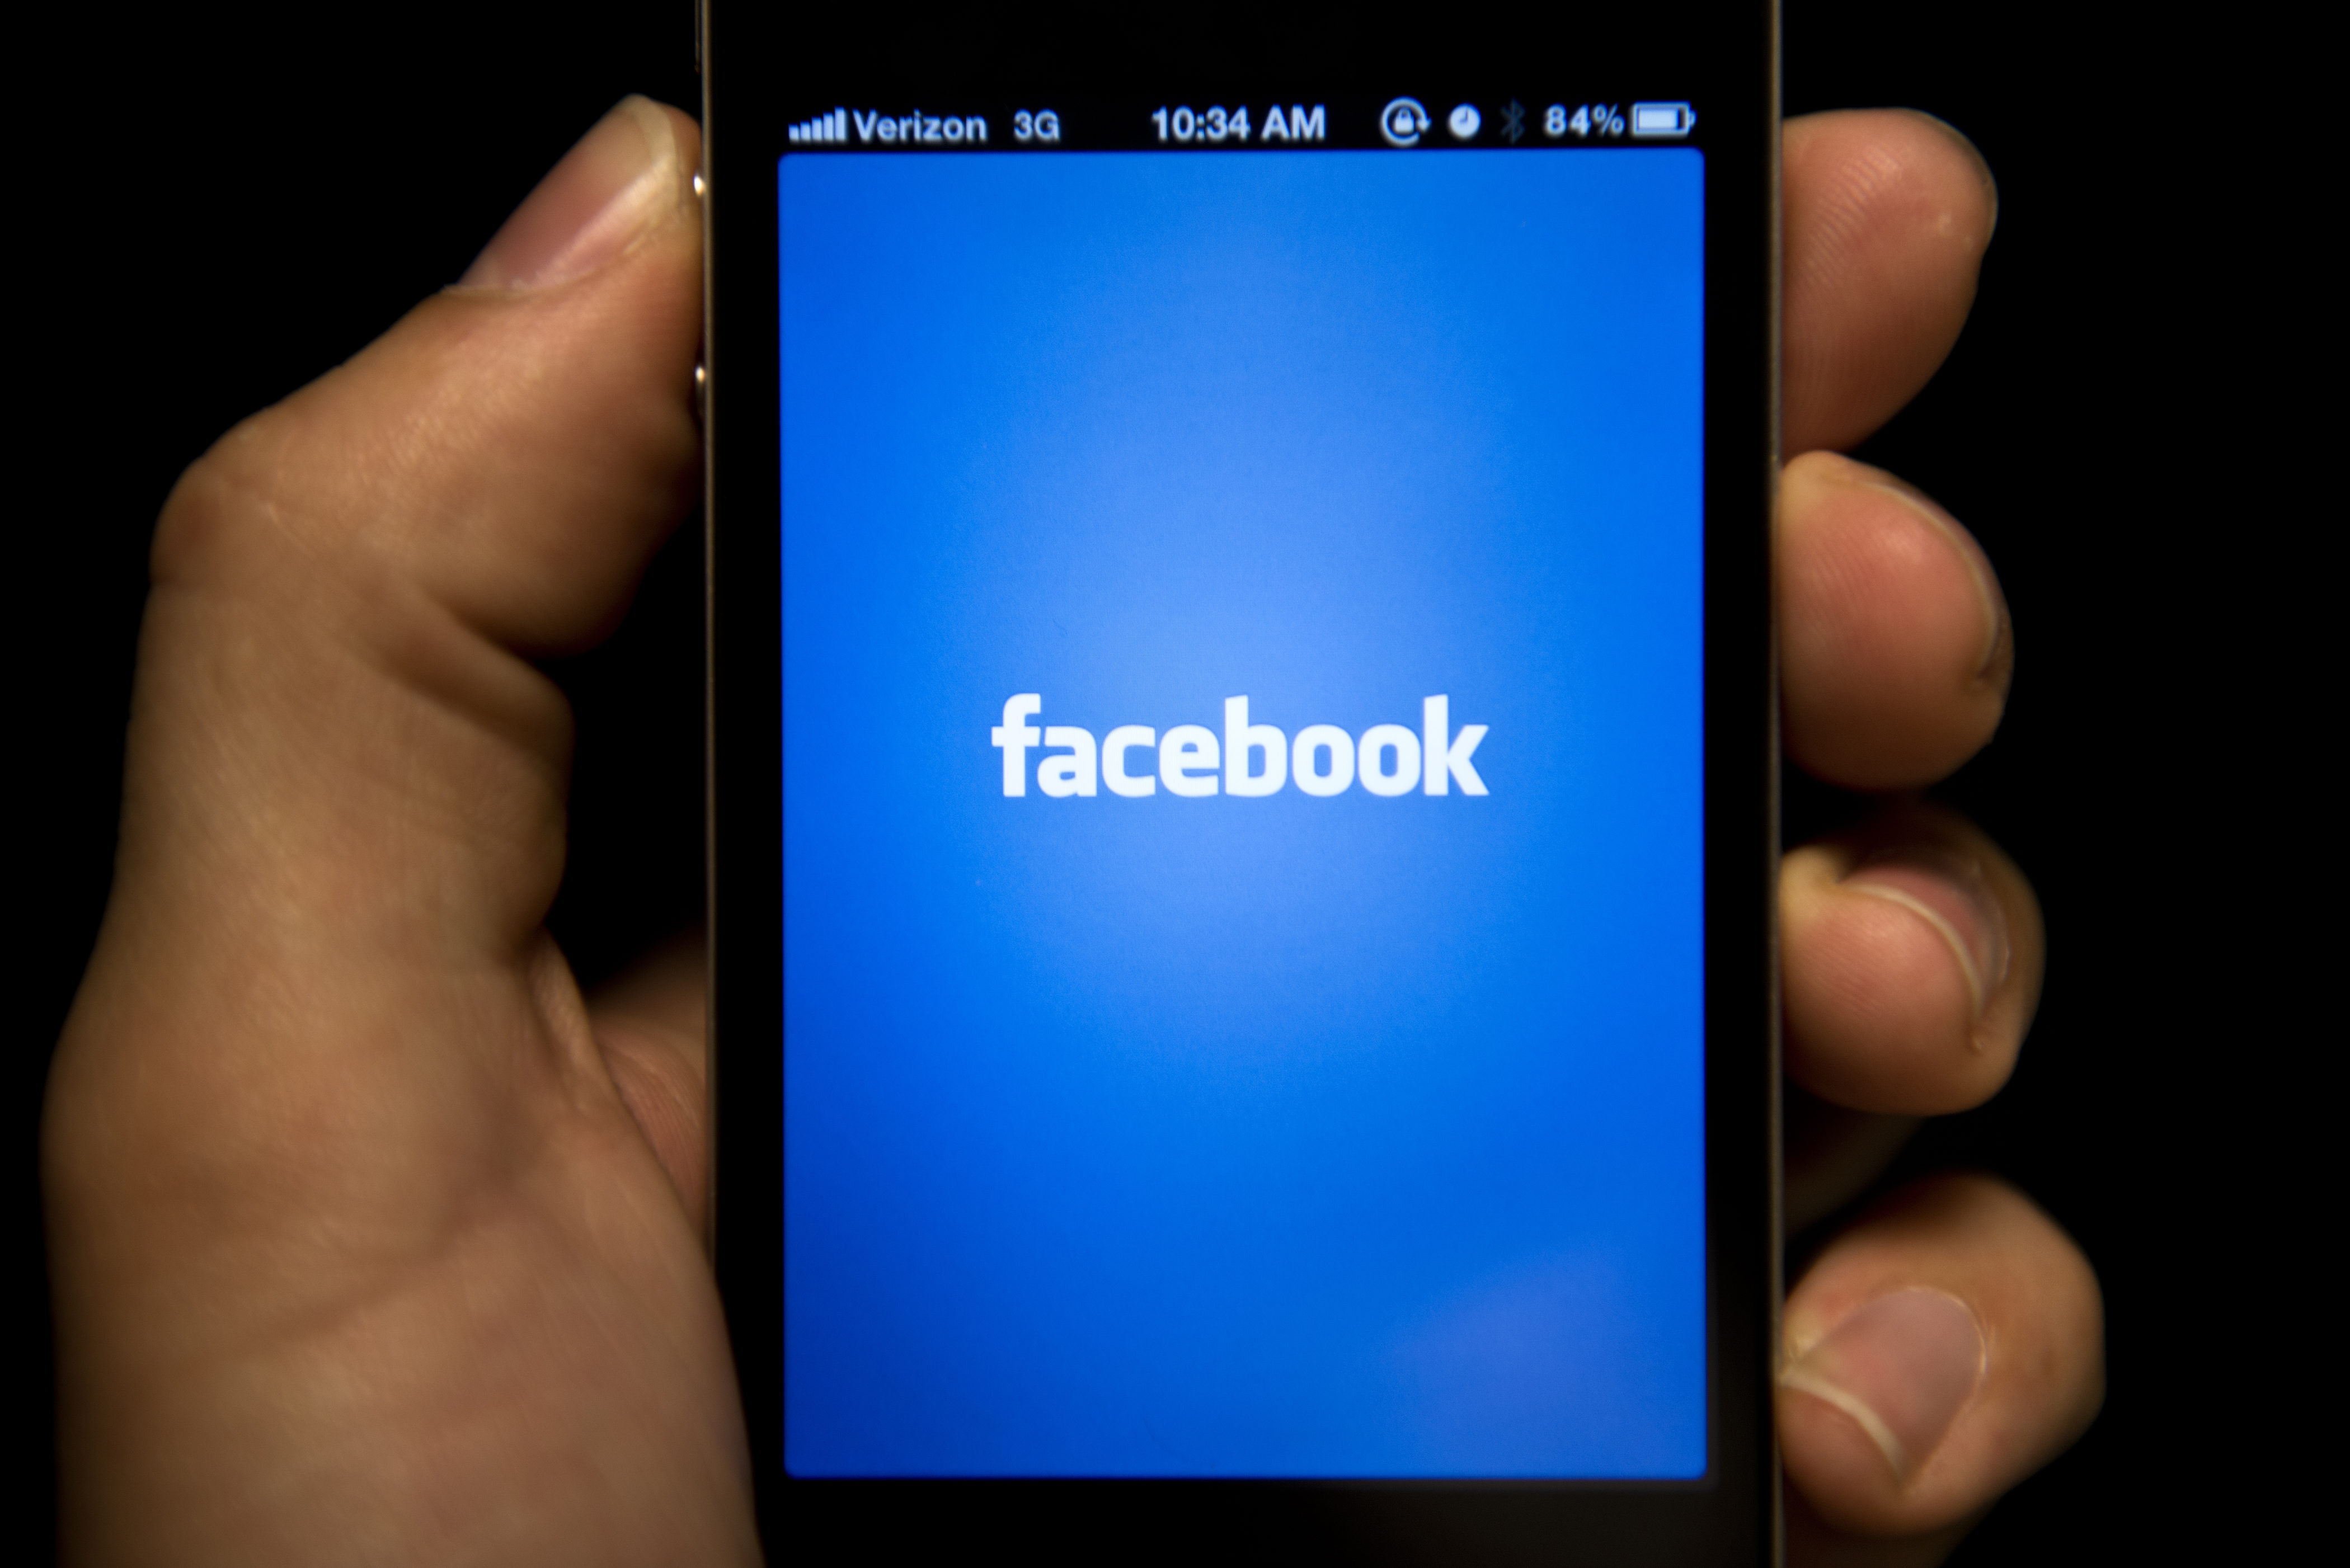 Facebook flaw allegedly prevents you from revoking app permissions on mobile